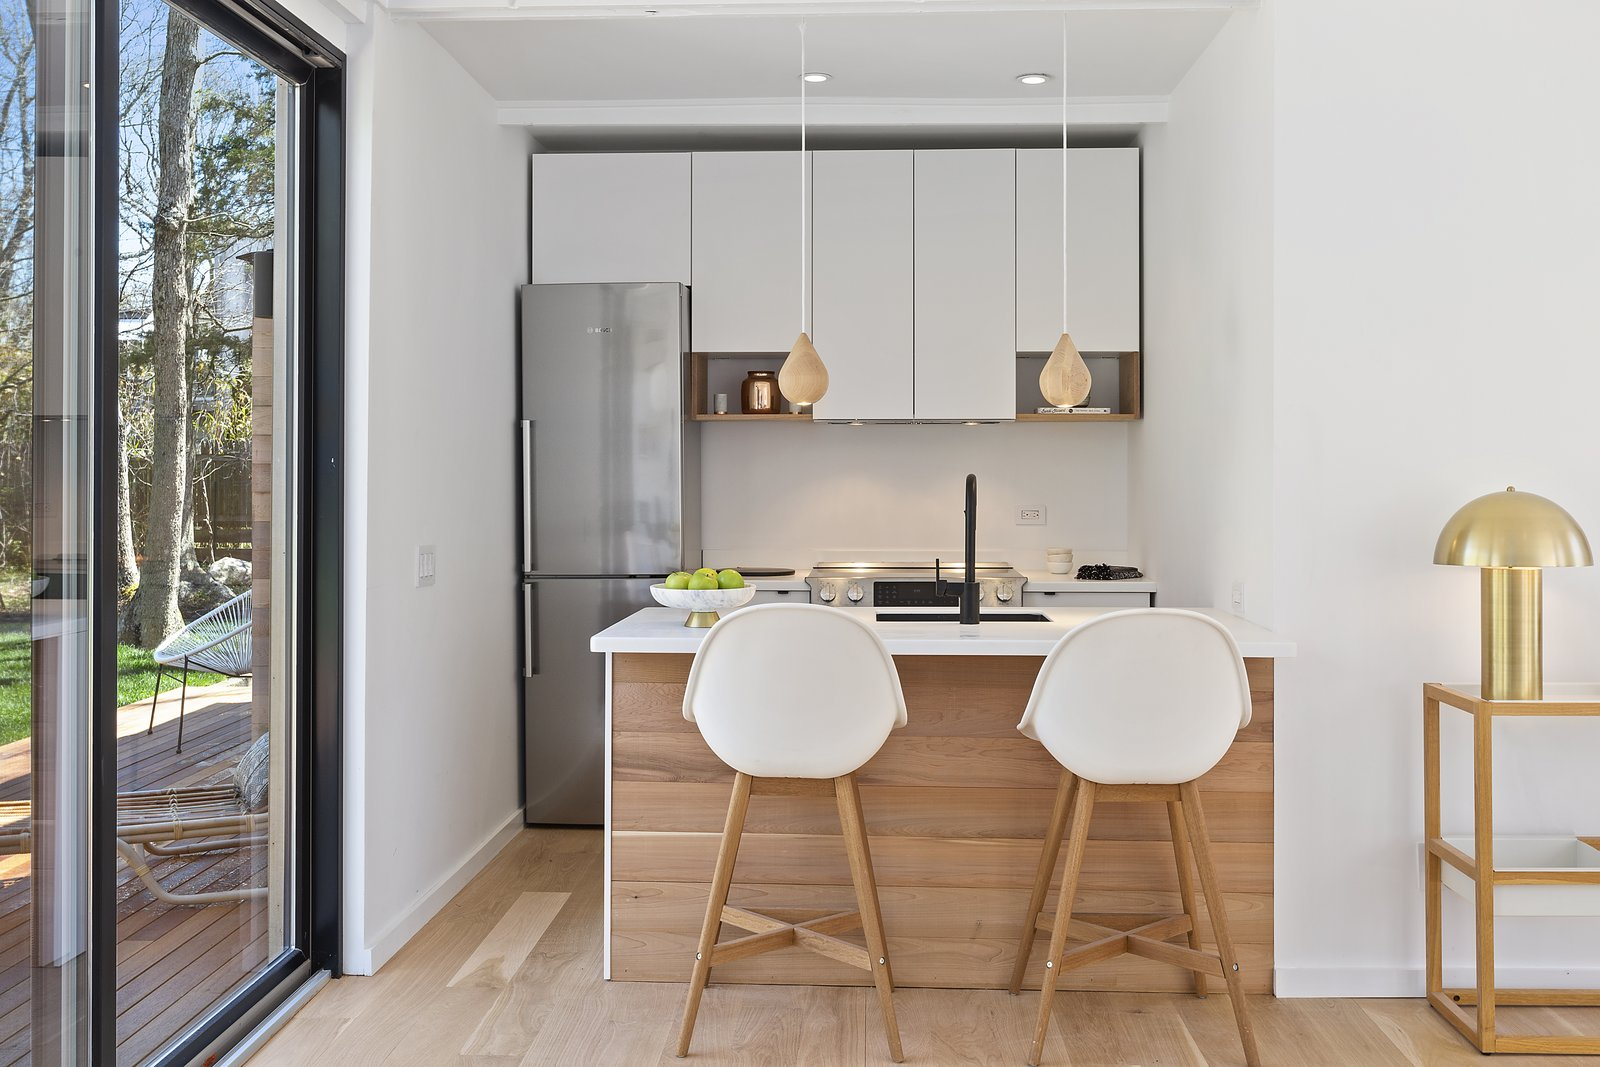 Kitchen, Refrigerator, Range Hood, White, Pendant, Light Hardwood, Range, Recessed, and Undermount The 1,000-square-foot dwelling has a petite yet highly efficient kitchen.    Best Kitchen Range Hood Light Hardwood Range Refrigerator White Undermount Photos from A Revamped Midcentury Wrapped in Glass and Timber Is Listed For $1.25M